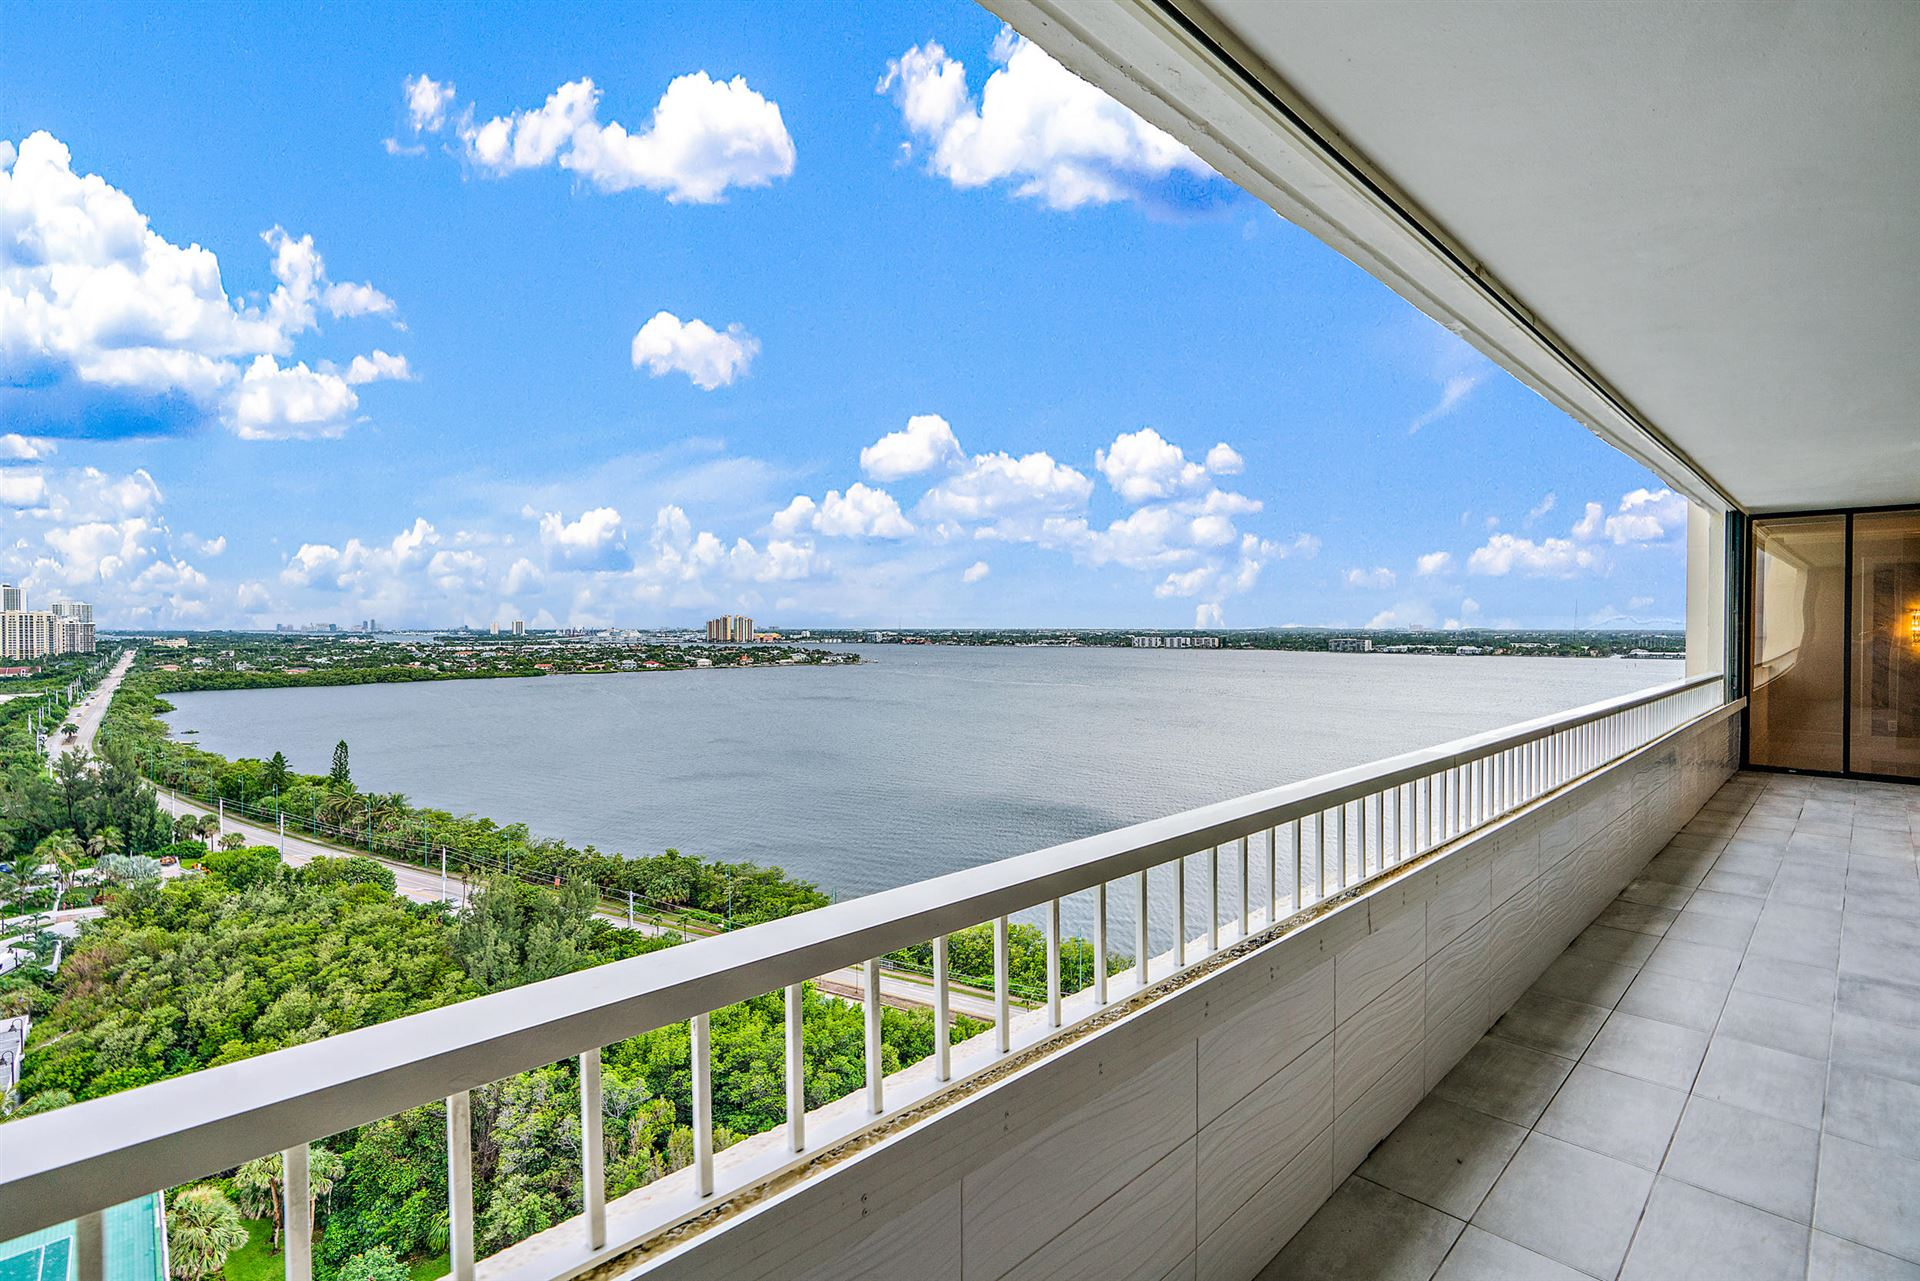 Photo of 5280 N Ocean Drive #16-F, Riviera Beach, FL 33404 (MLS # RX-10660831)